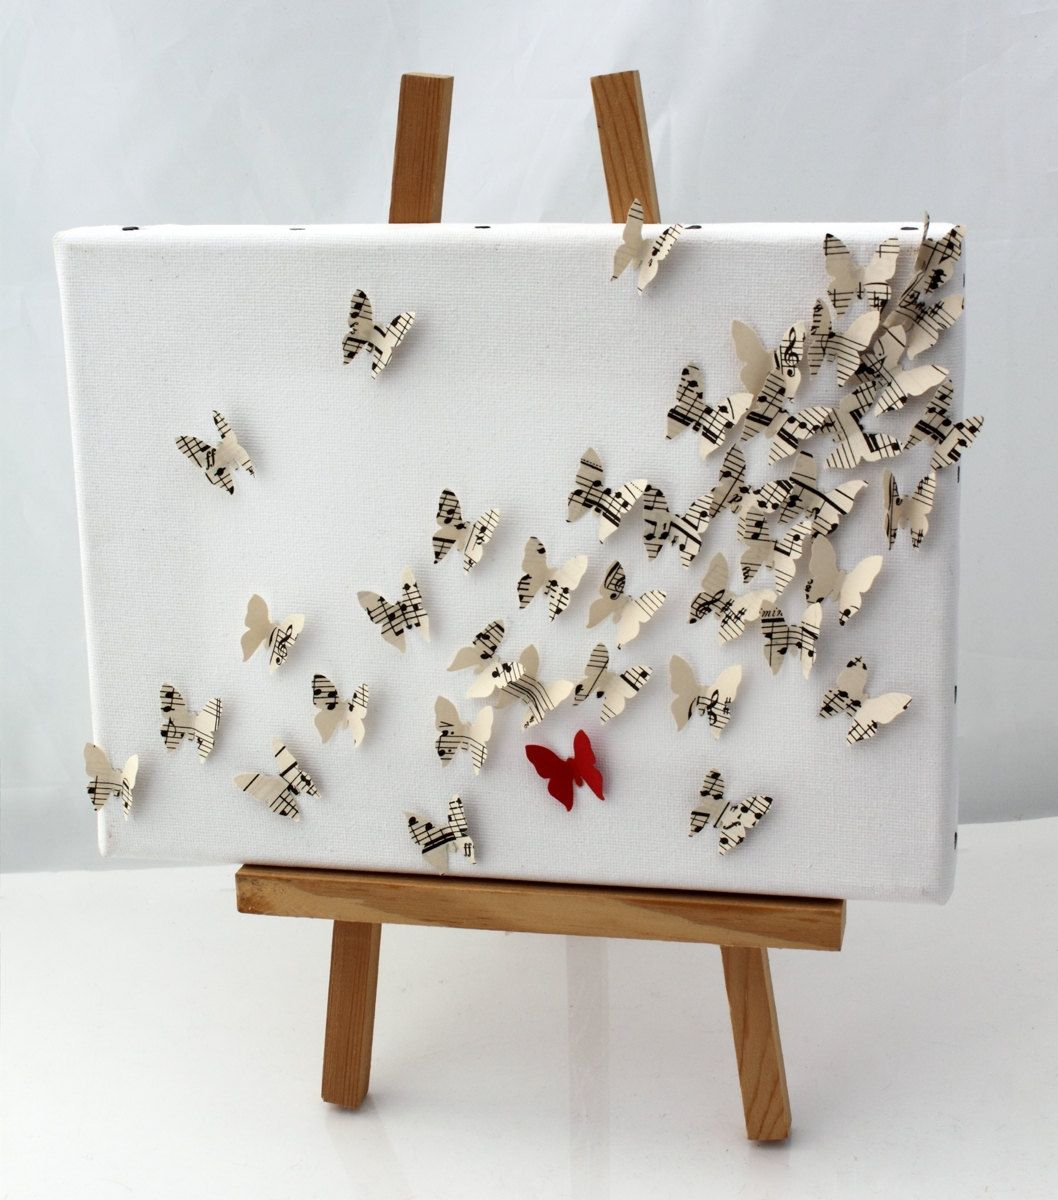 Collage Wall Art 3d butterfly wall art collage on canvas- upcycled vintage sheet